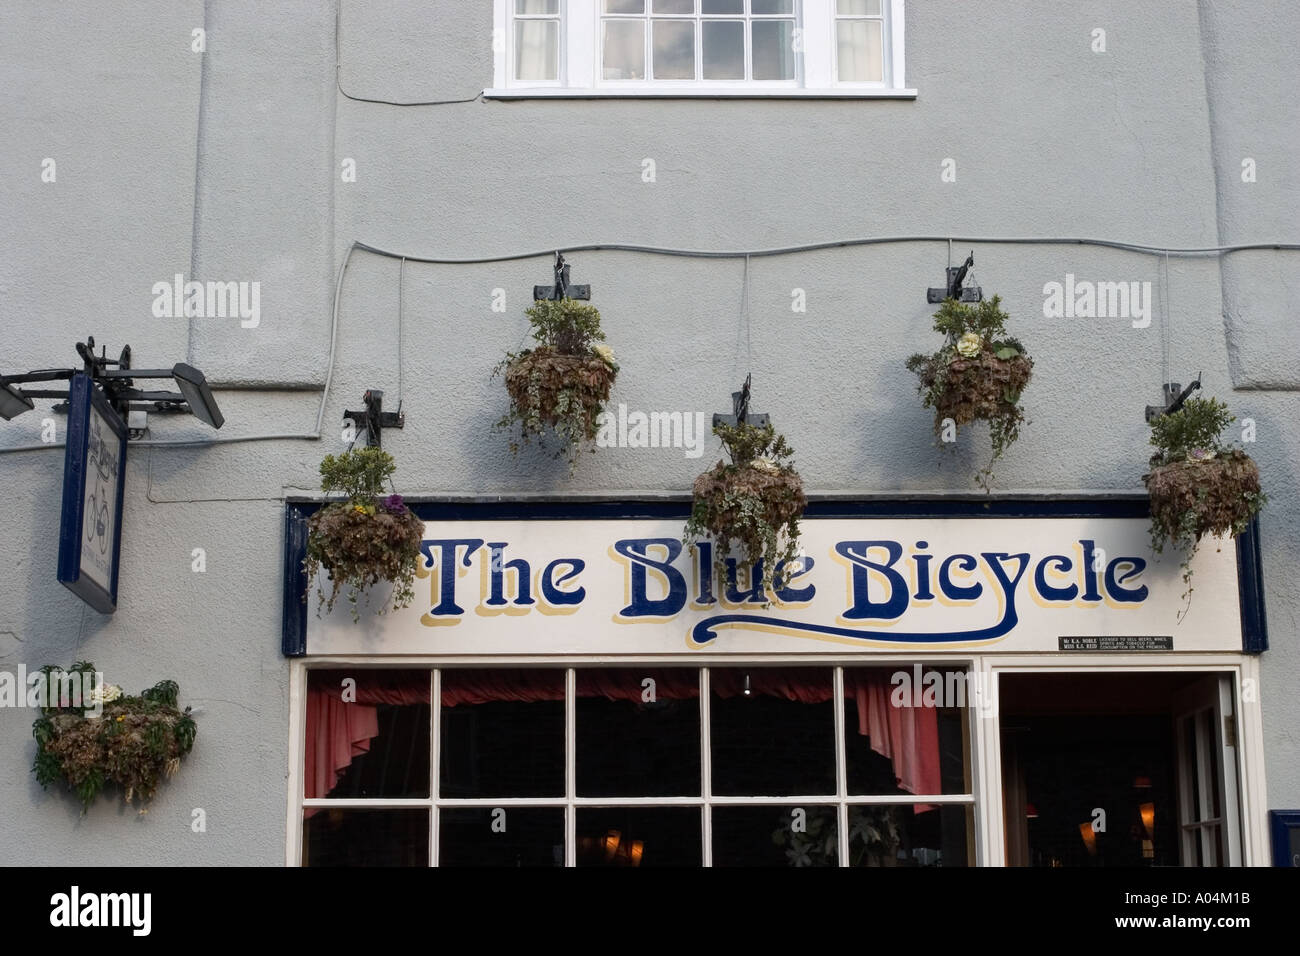 The Blue Bicycle Fossgate York - Stock Image